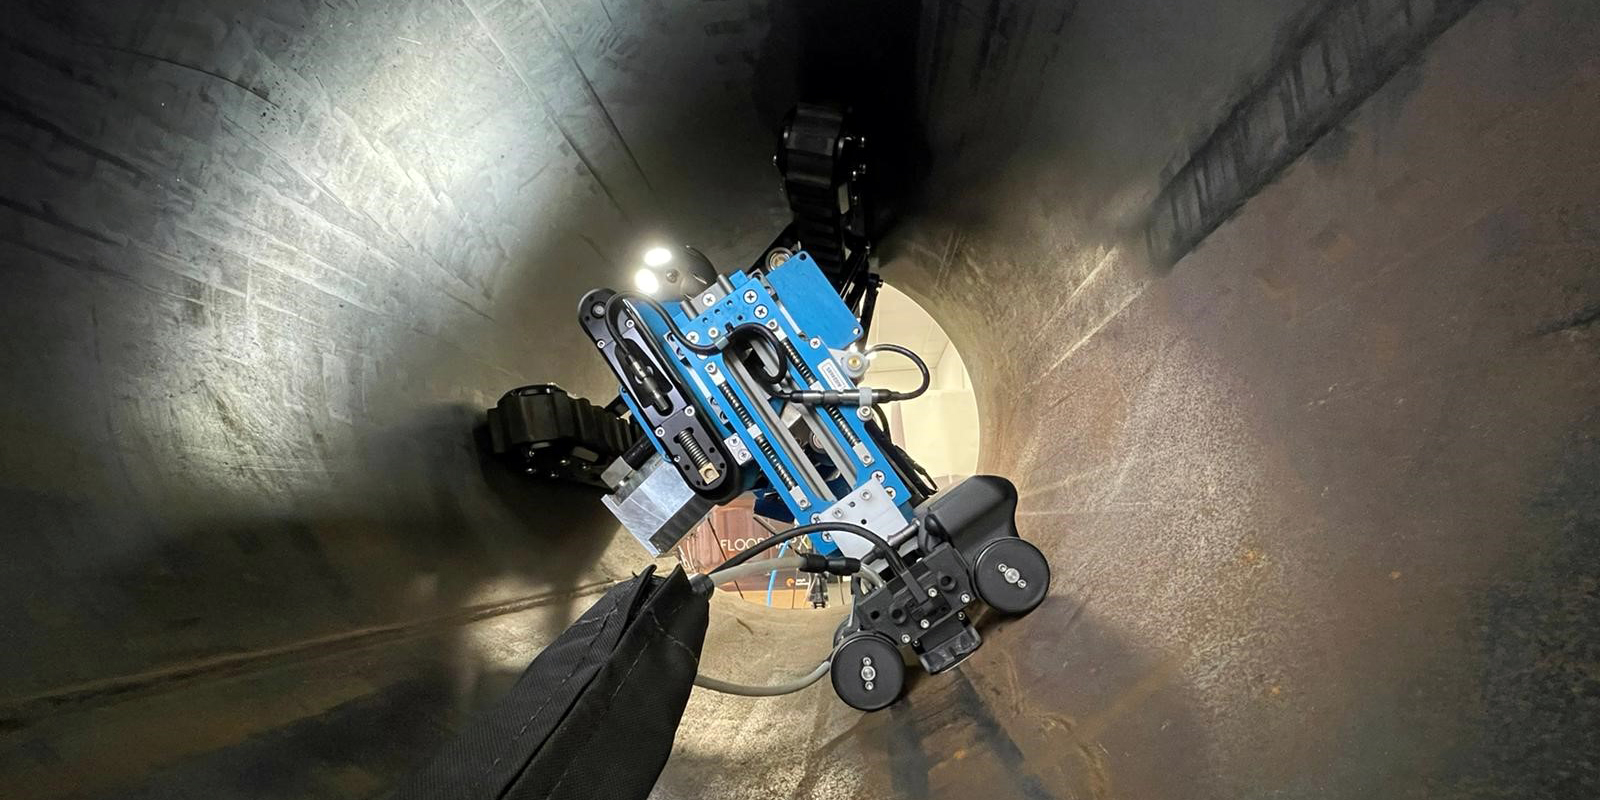 You Really Can Have It All: The Robotic Solution for UT, RVI & Laser Scanning for Pipeline Inspection